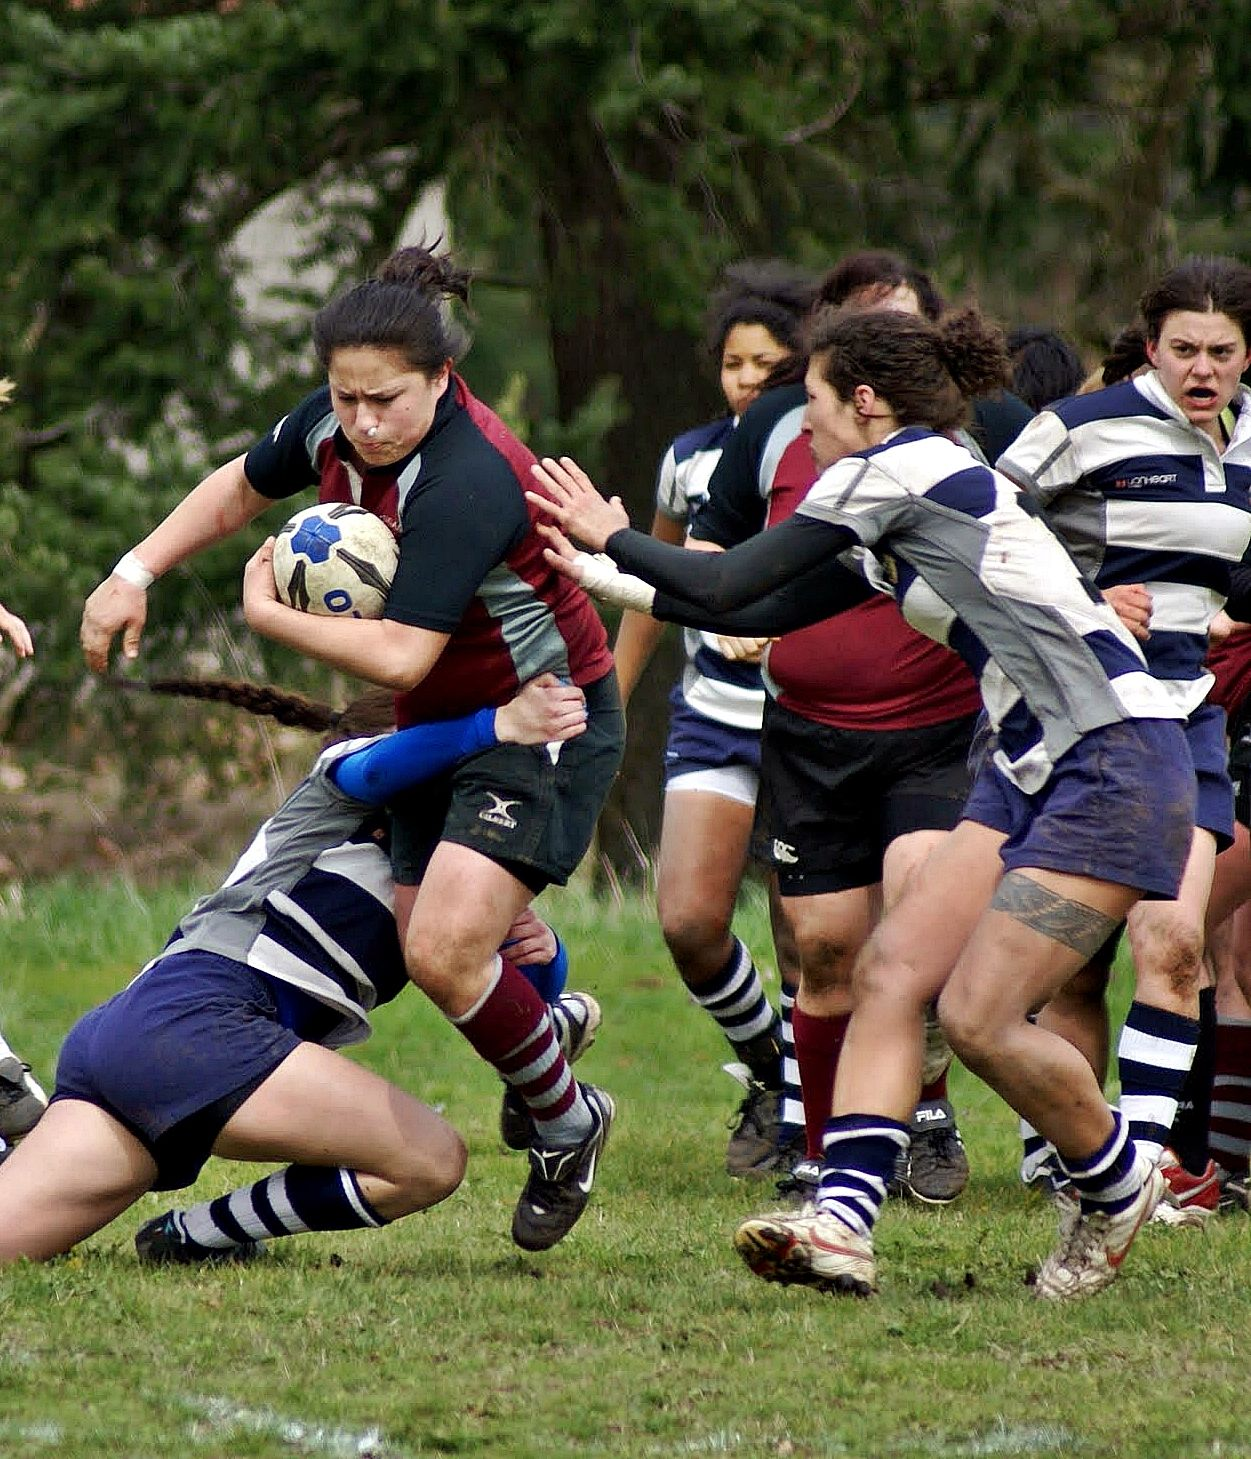 Washington State University Vs Western Washington University Rugby I Miss Playing Womens Rugby Rugby Team Rugby